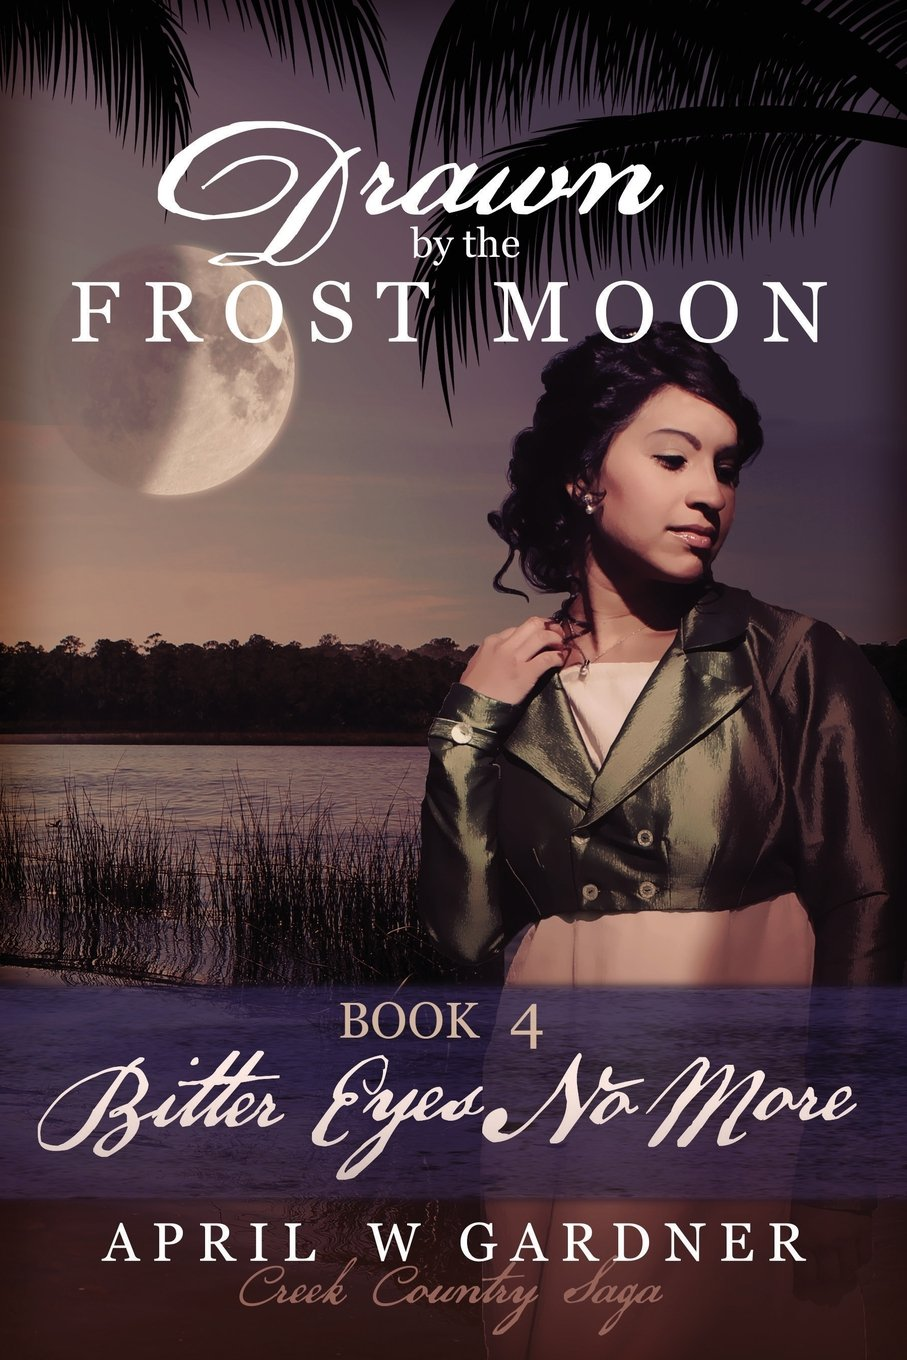 Drawn Frost Moon Bitter Country